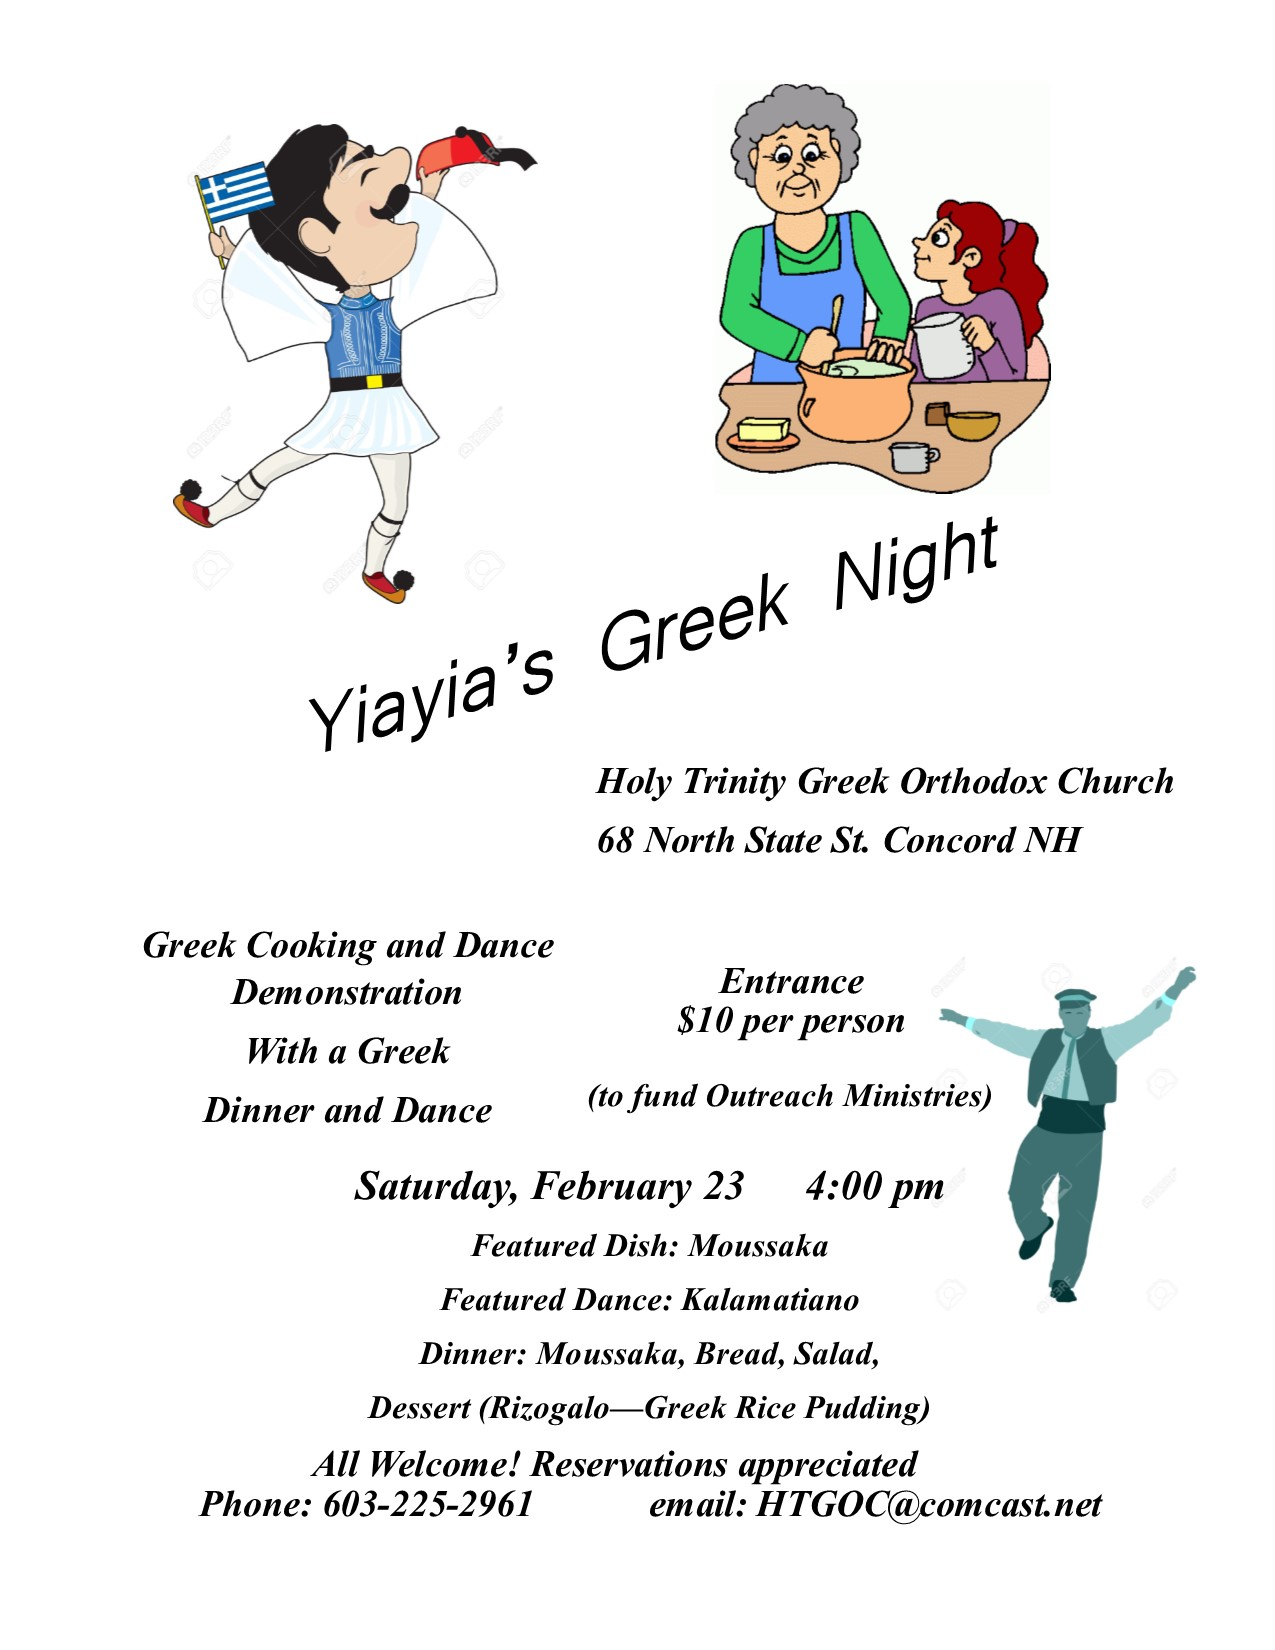 Yiayia's Greek Night Out